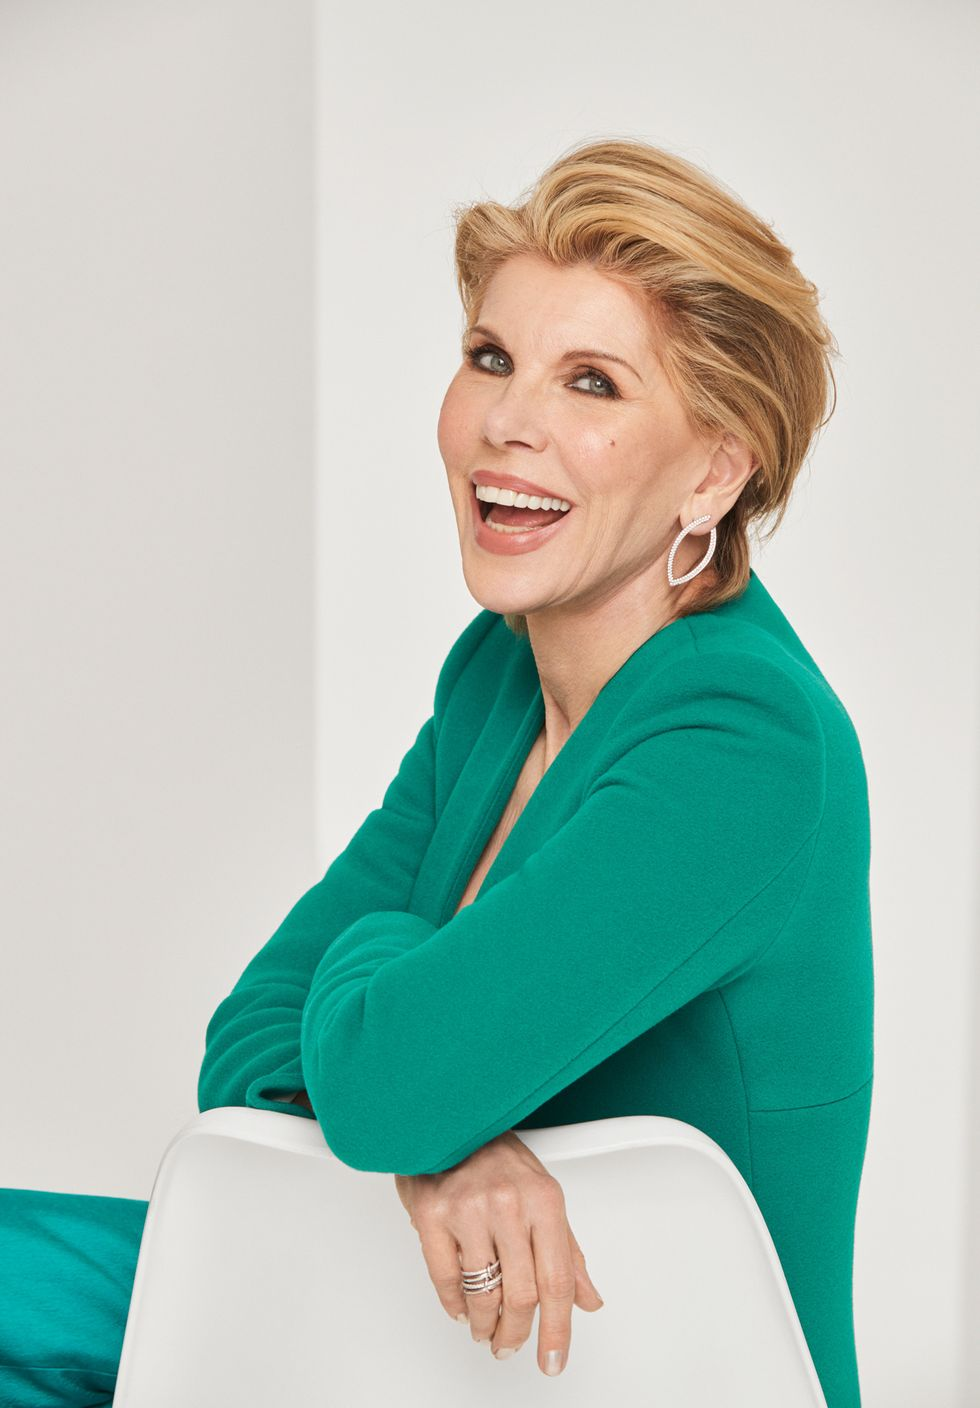 Christine Baranski in a green suit leaning against a chair.